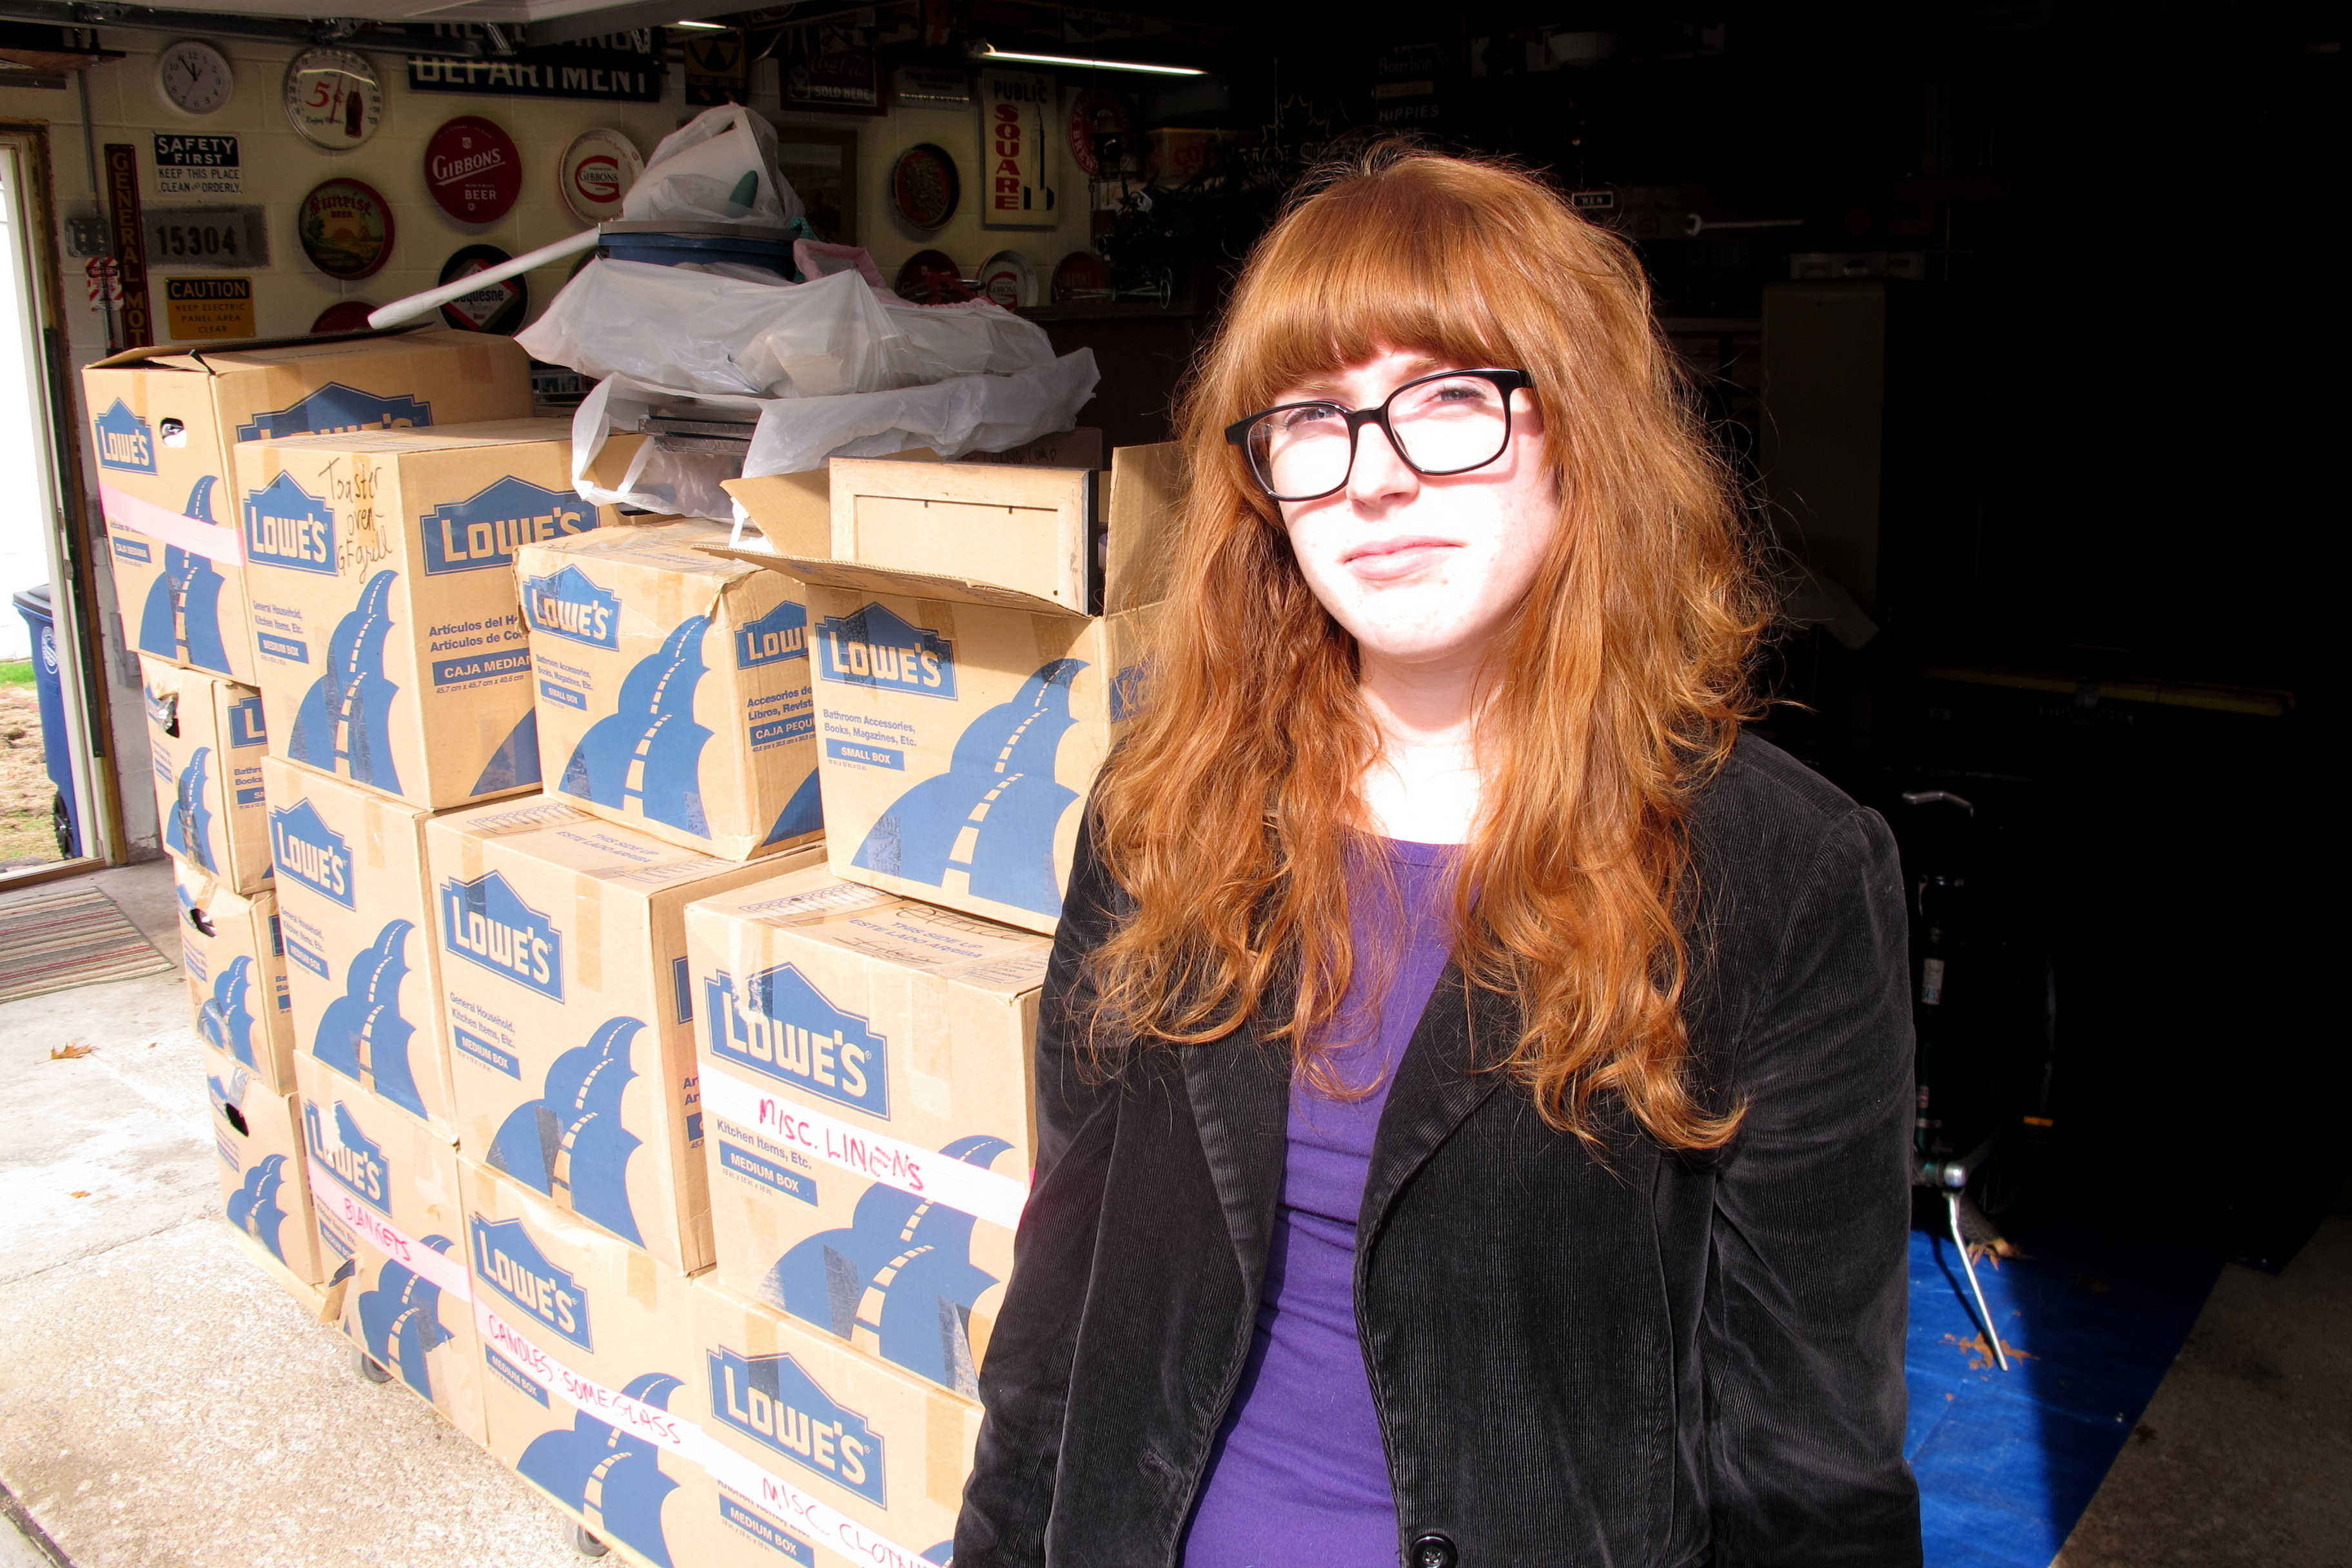 Caption: Bridget Gibbons and her belongings., Credit: Brian Bull, WCPN.